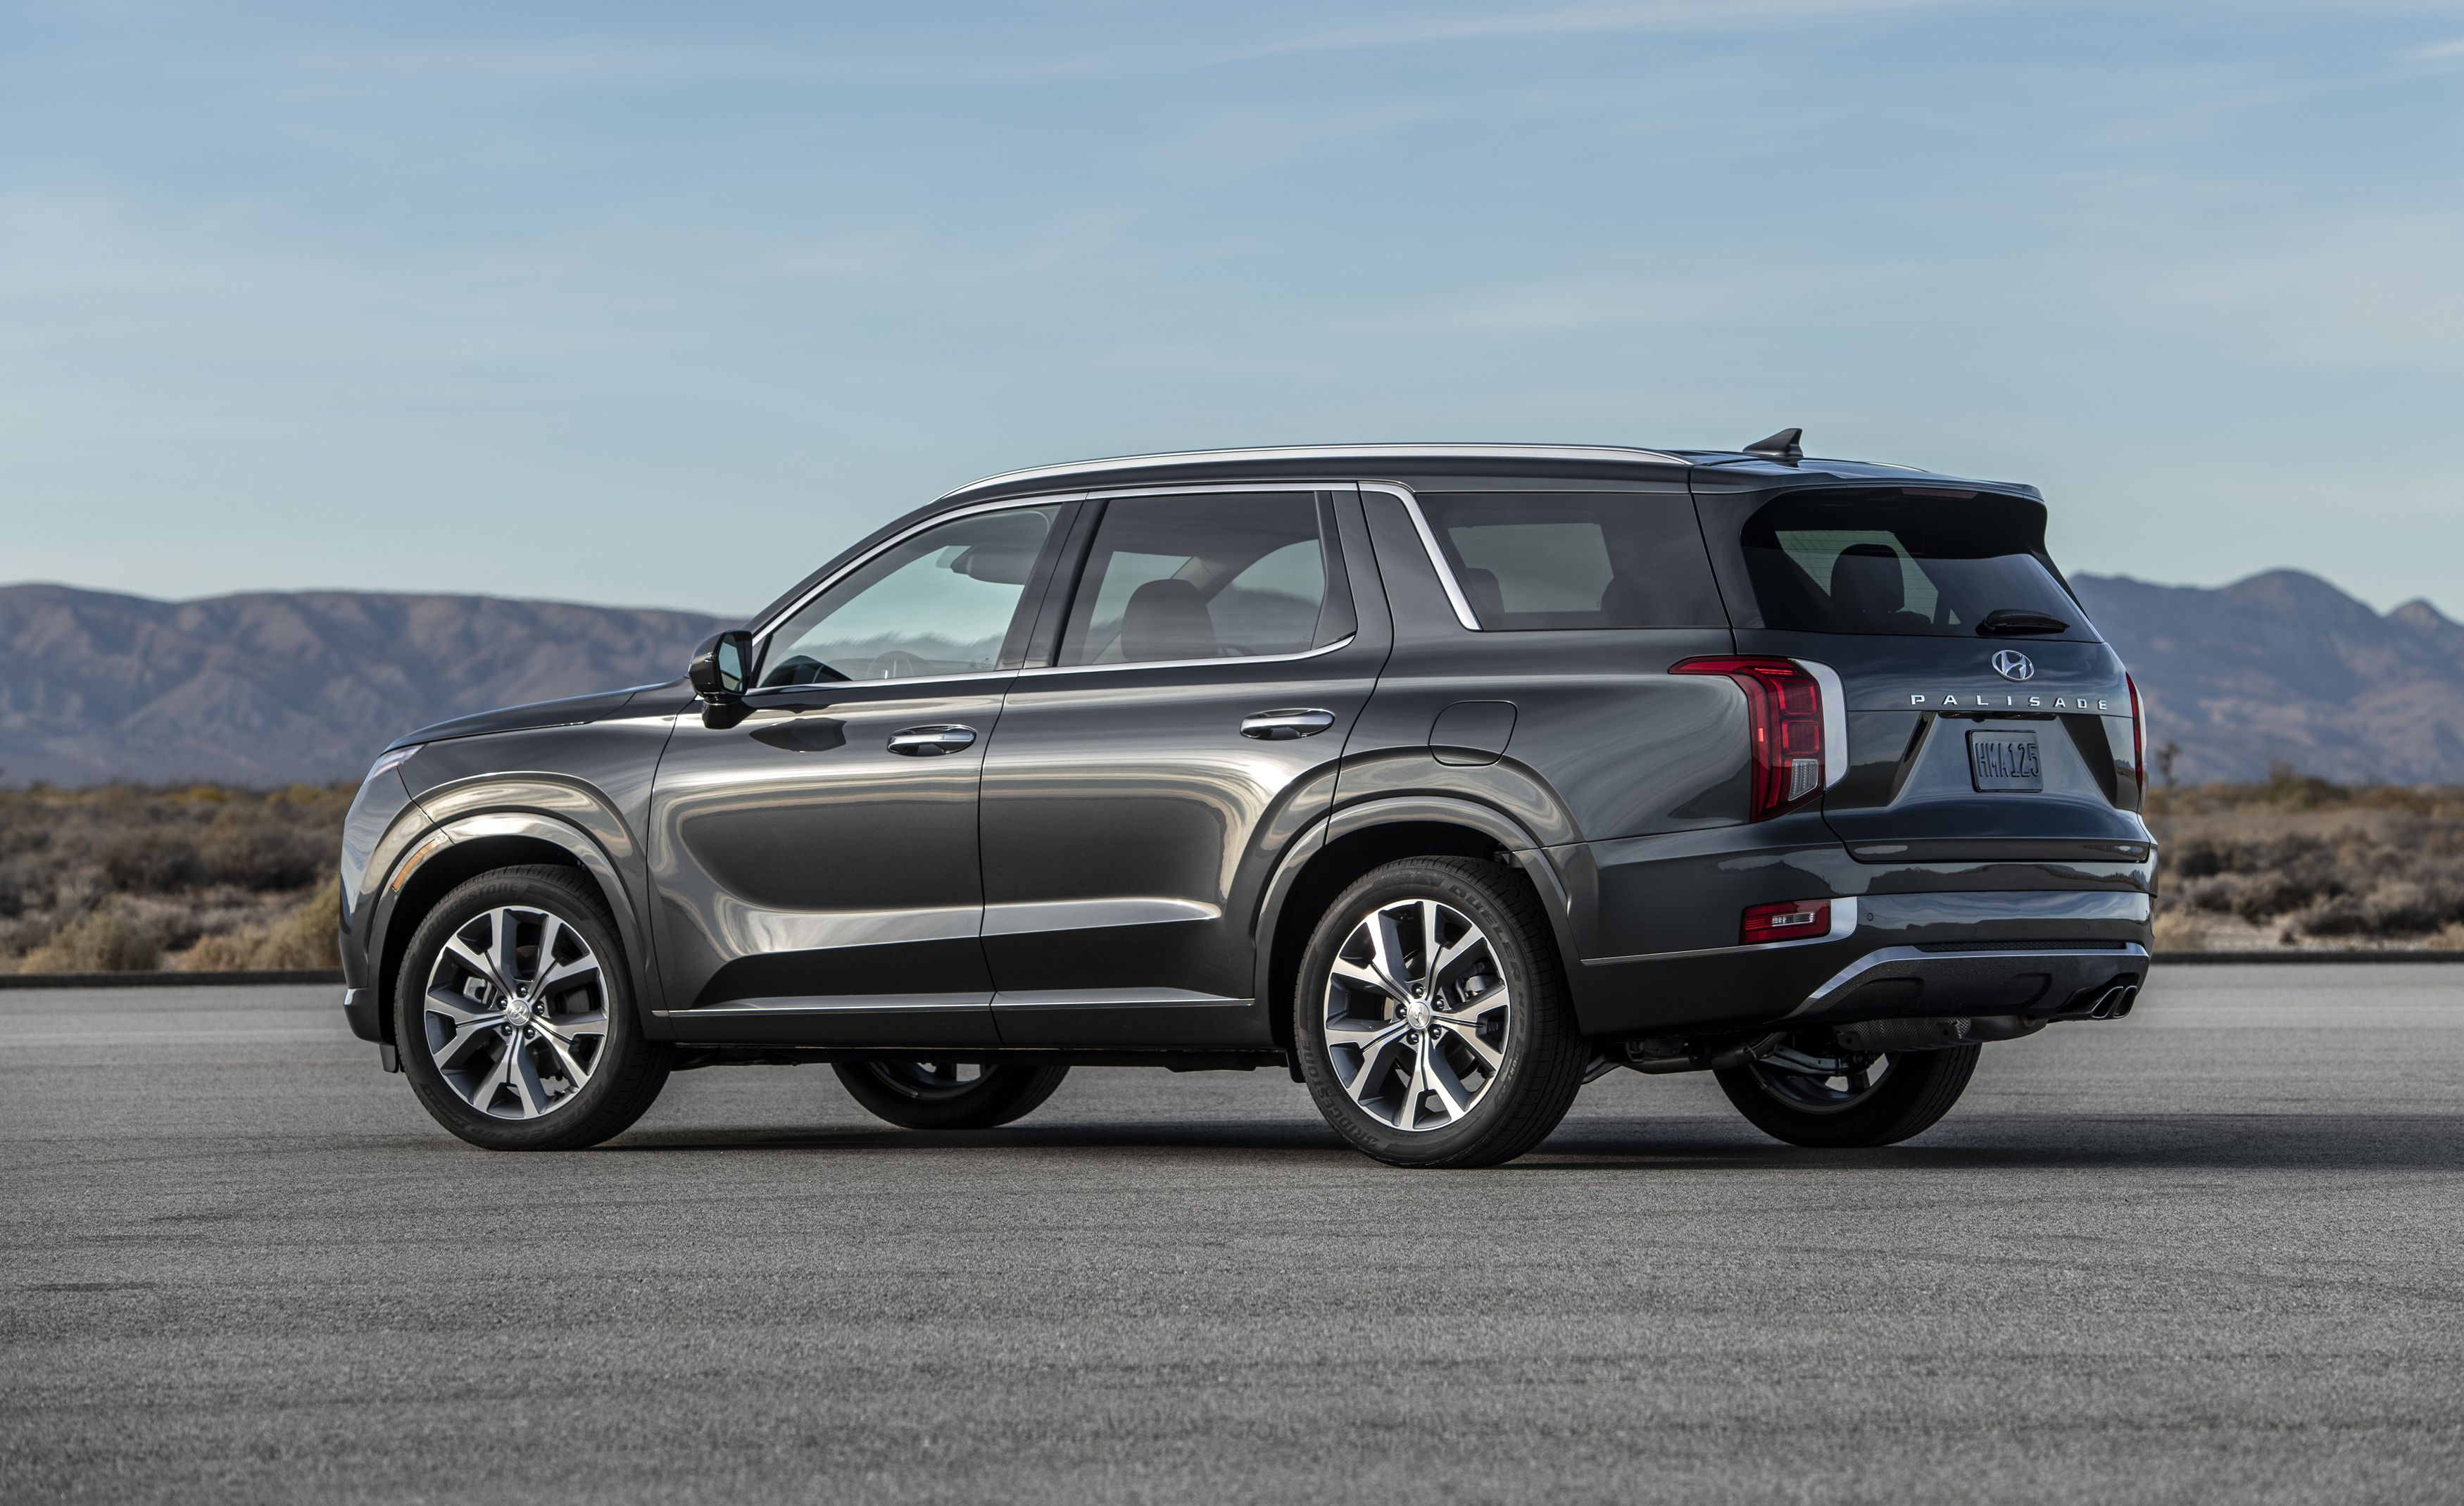 2020 Hyundai Palisade Reviews Hyundai Palisade Price Photos And